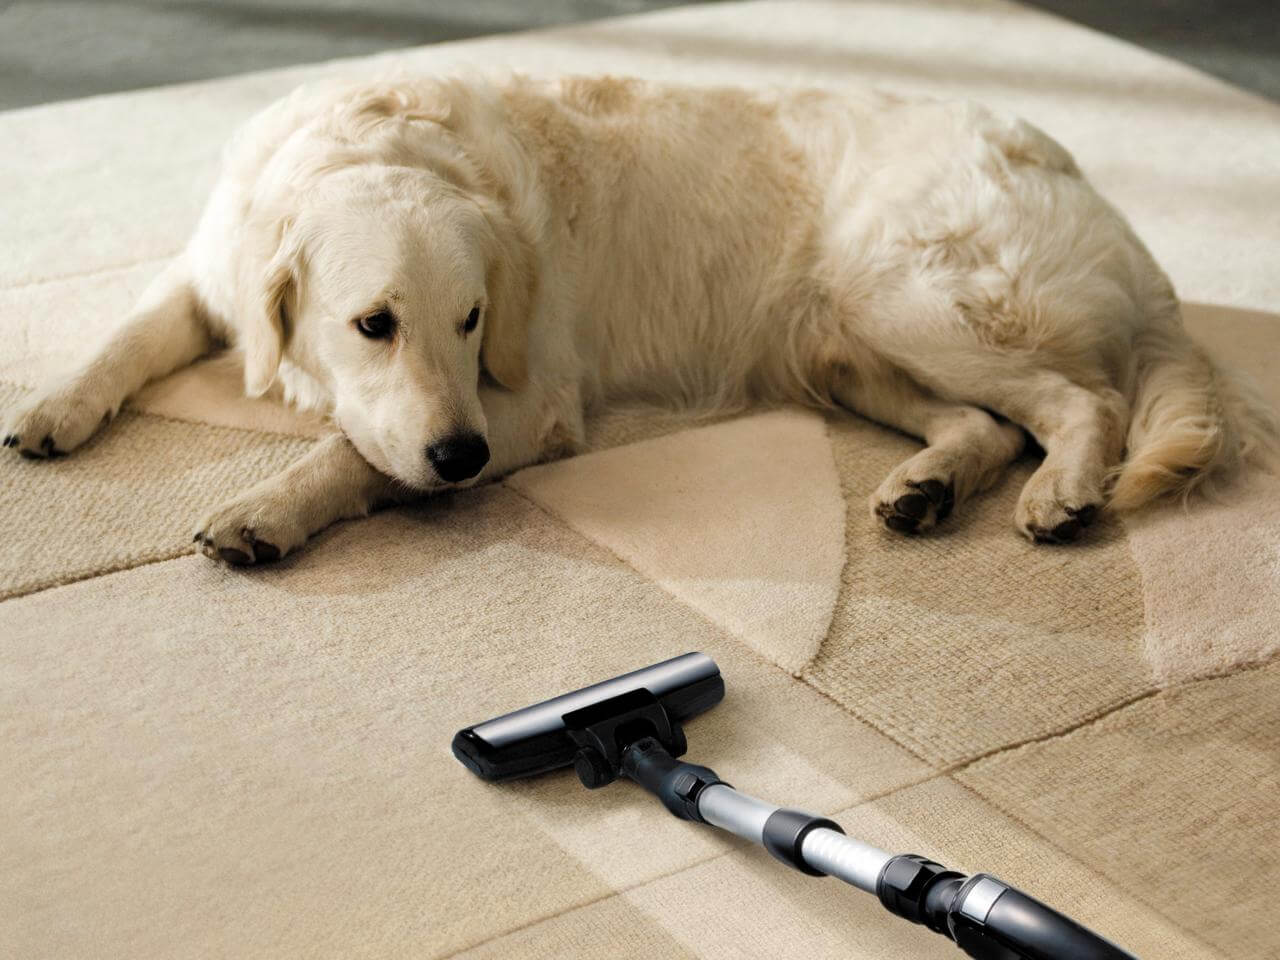 This dog looks at the vacuum like it's more of a bother